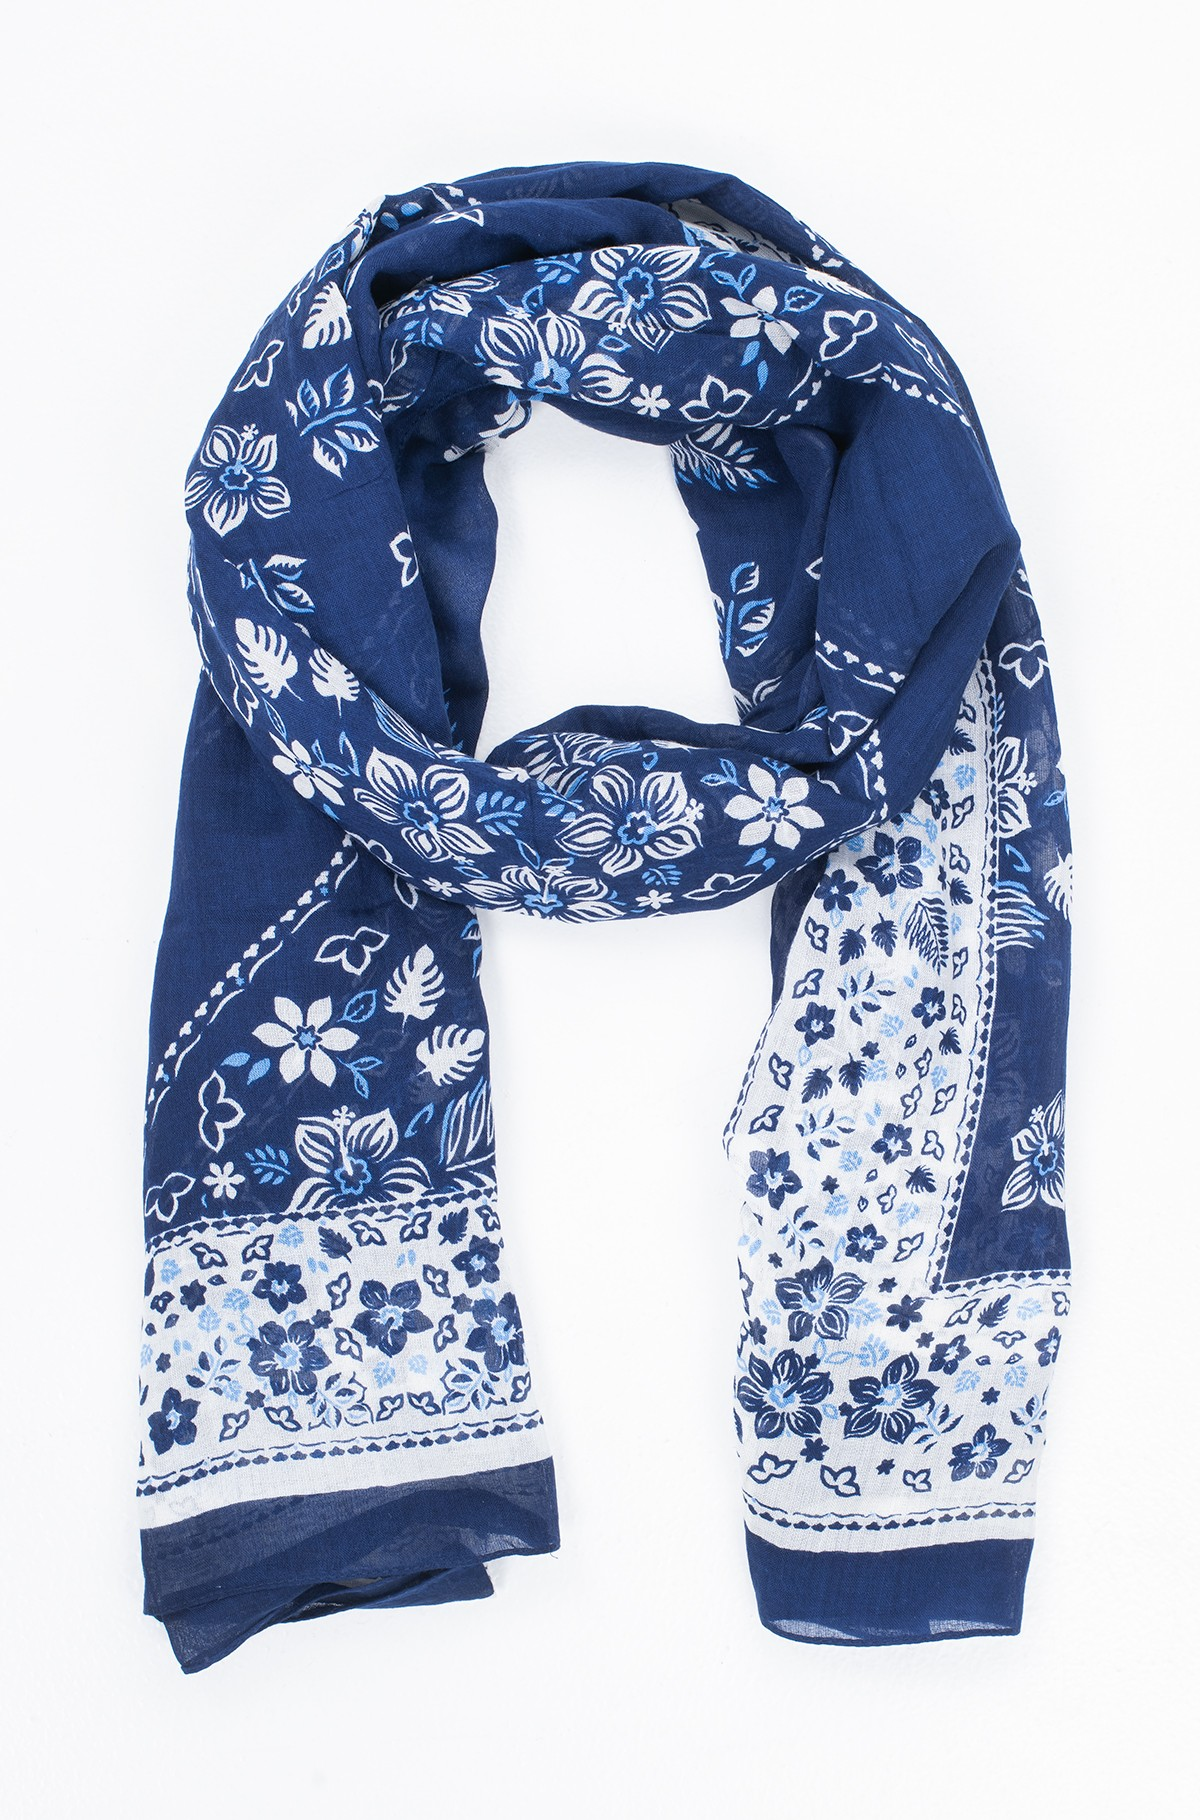 Sall DENISE SCARF/PL110565-full-1